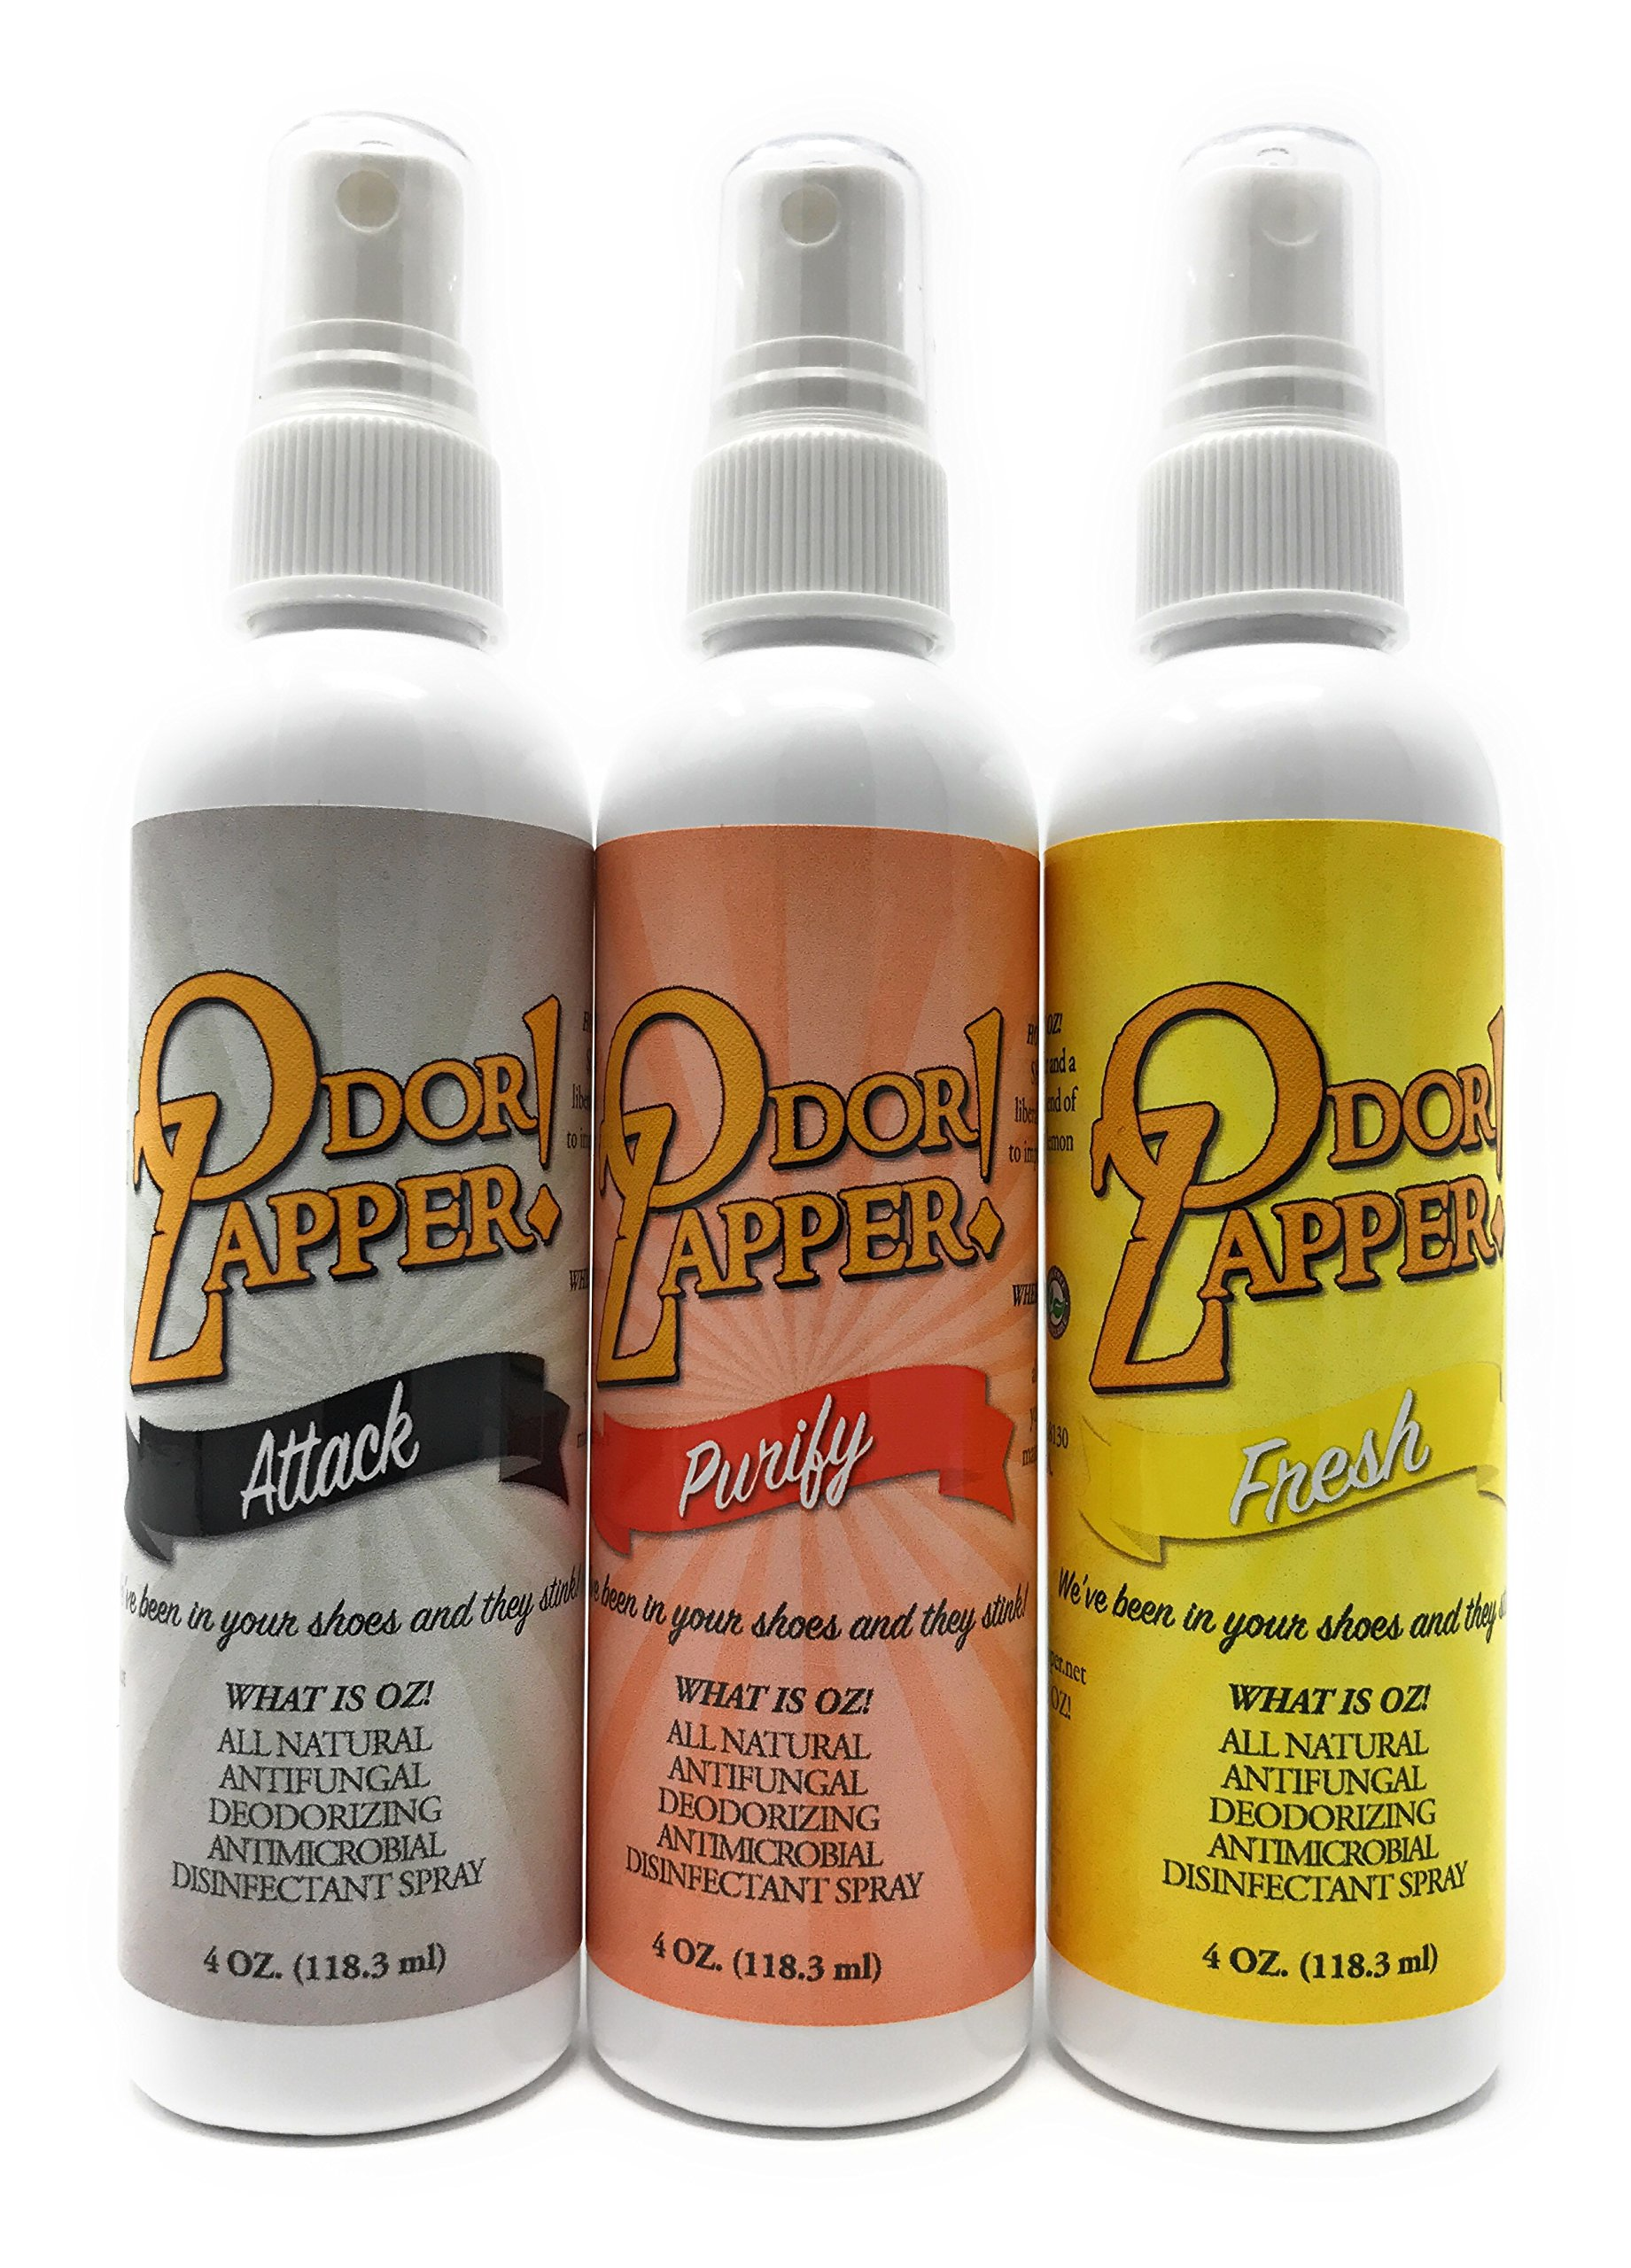 Odor Zapper Disinfectant Spray - For use in Shoes, Gym Bags, Yoga Mats, Kid's Cars and More! ''Gentle Pack'' 3 Pack, 4oz bottles